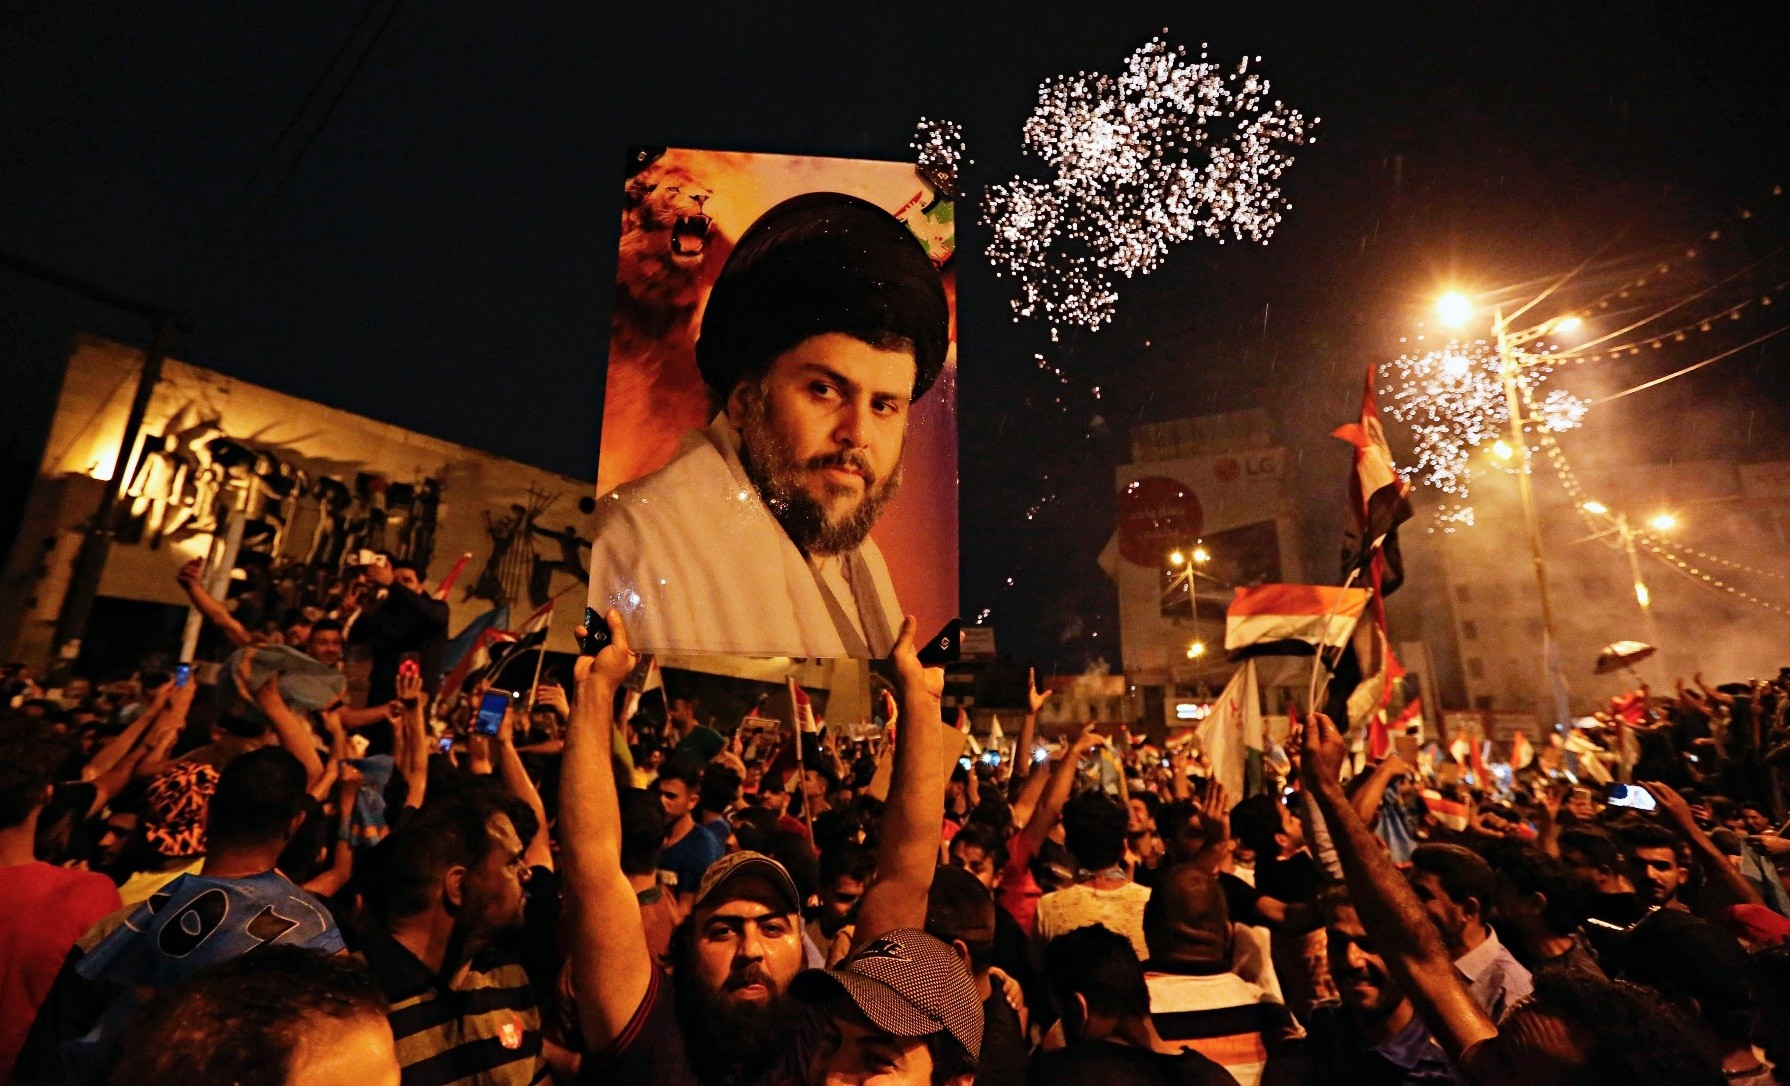 Supporters of Shiite cleric Muqtada al-Sadr, carry his image as they celebrate in Tahrir Square, Baghdad, Iraq.